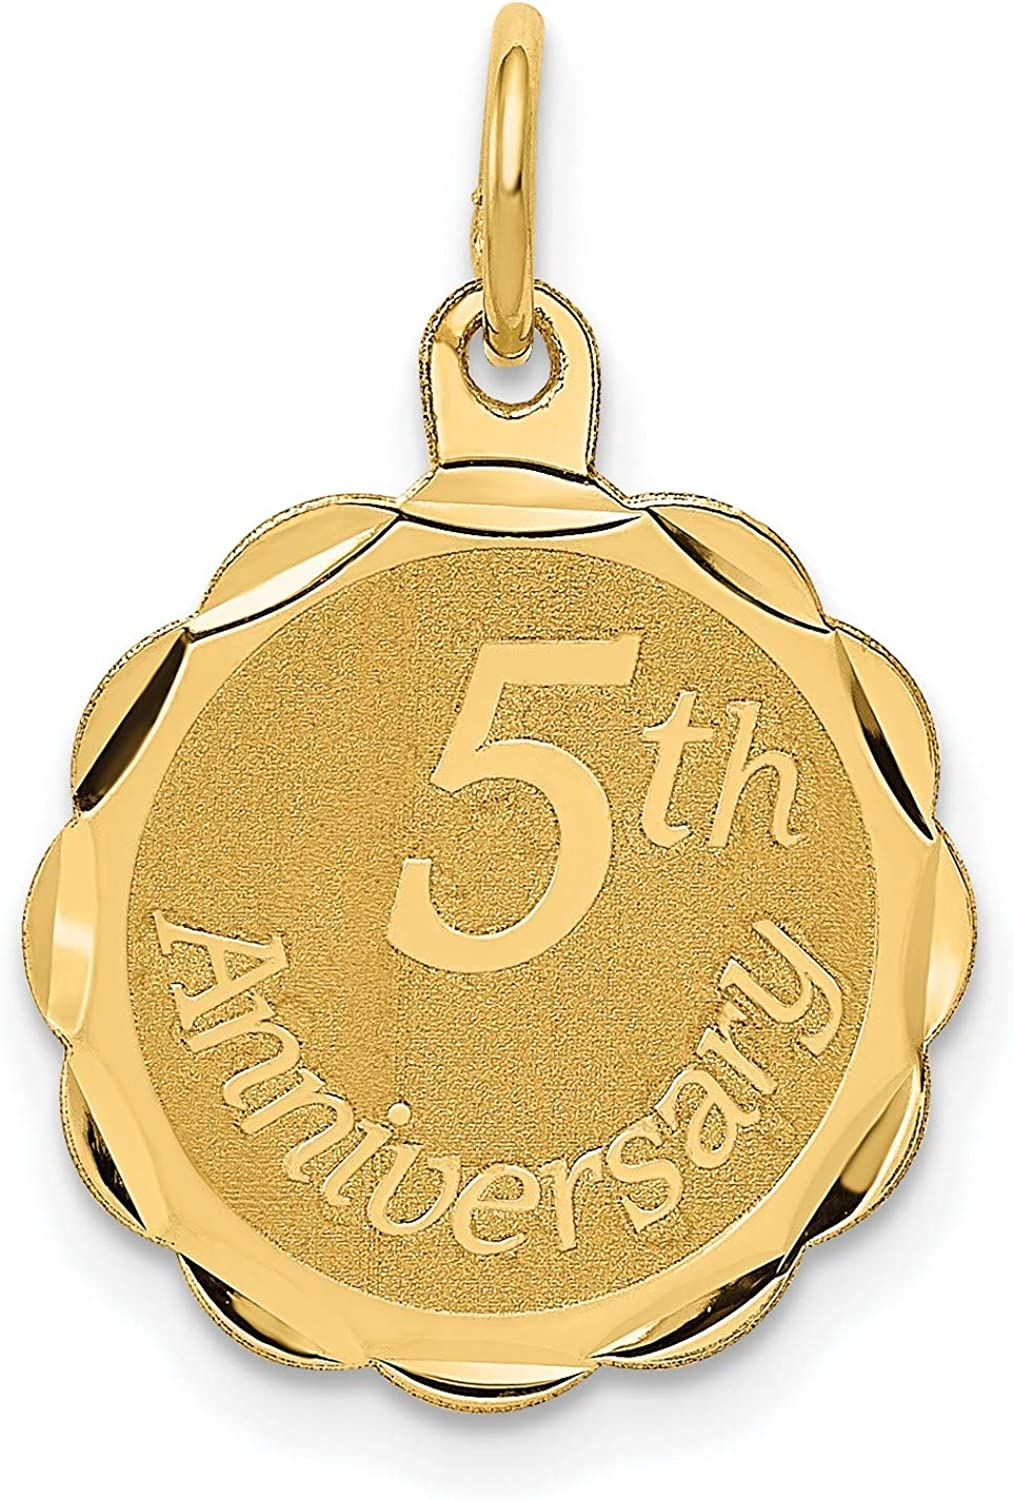 14k Yellow Gold Happy 5th Anniversary Charm 1 year warranty excellence mm 23 16 x